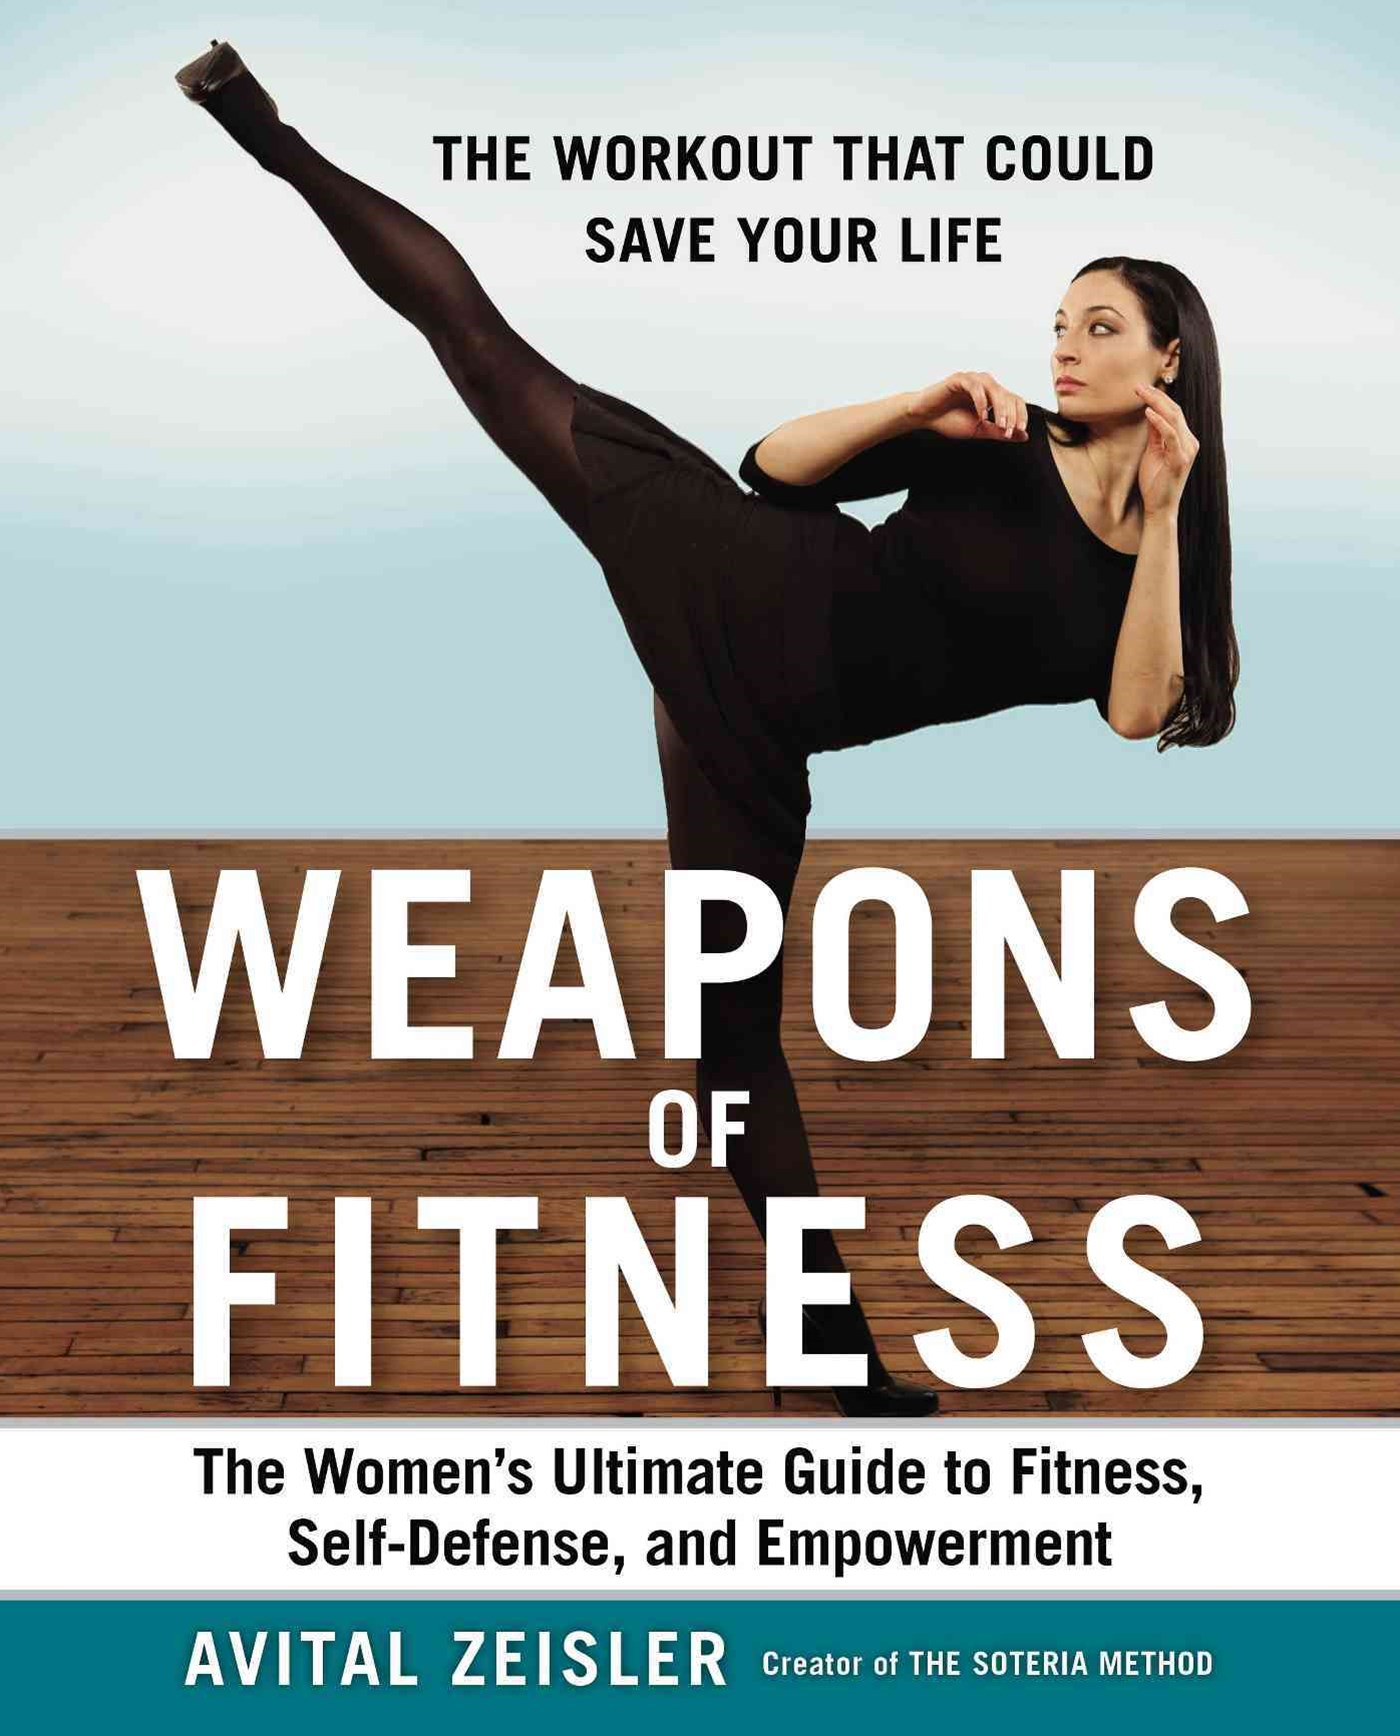 Weapons of Fitness: The Women's Ultimate Guide to Fitness, Self-Defense,and Empowerment